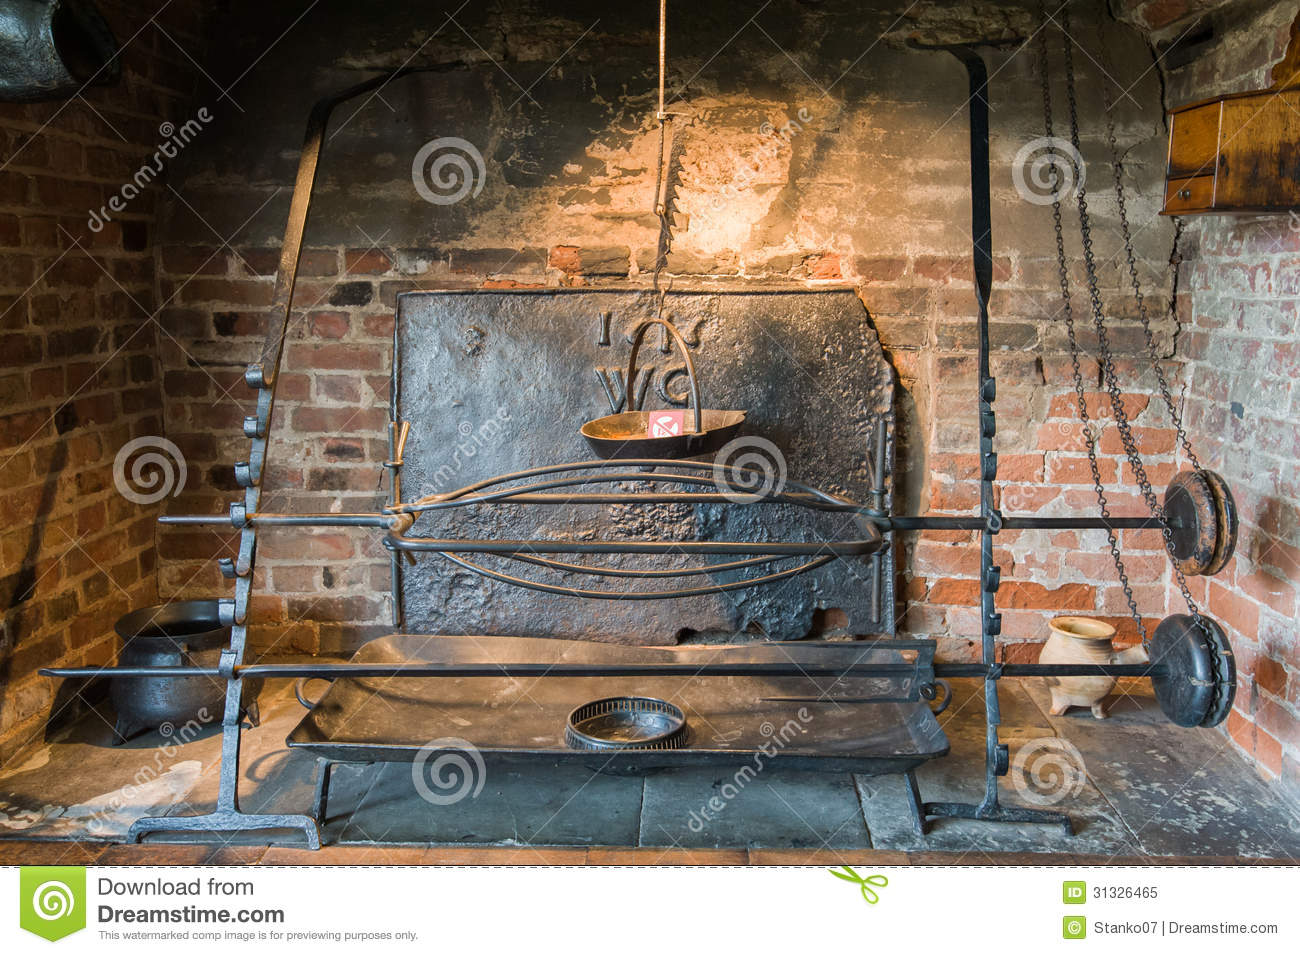 Ancient Fireplace Royalty Free Stock Photo - Image: 31326465